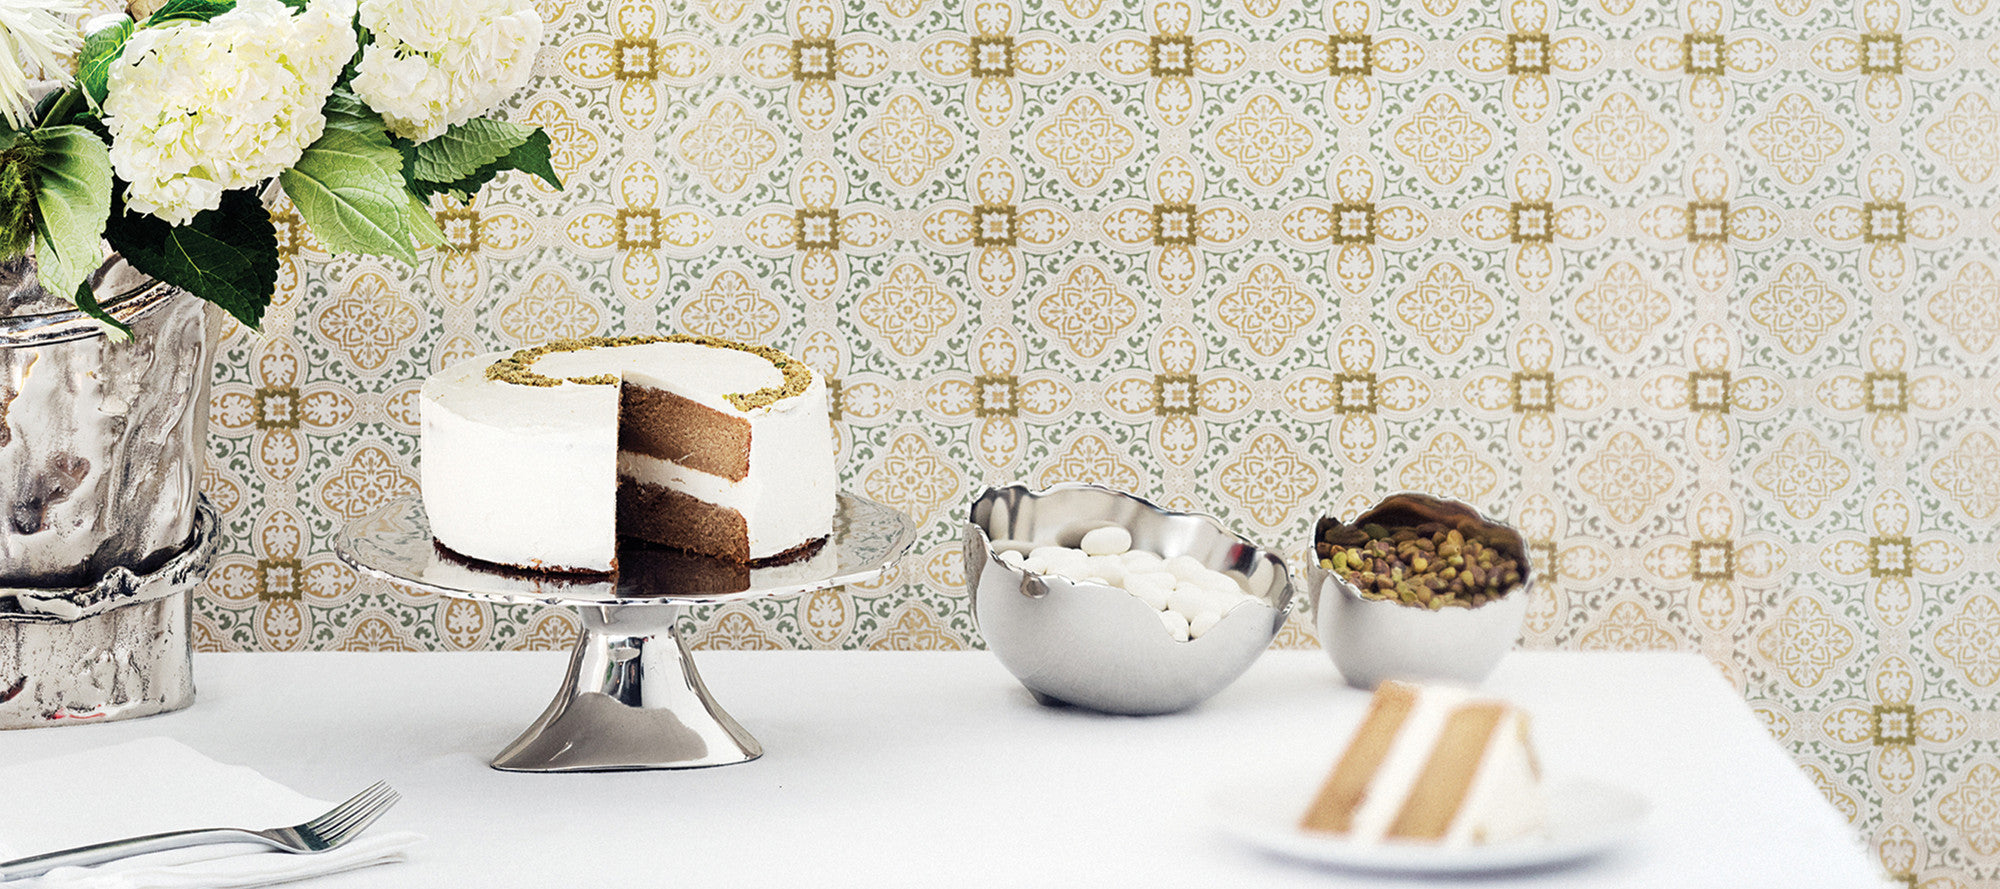 Star Home Designs - Tabletop and Home Decor - Style Your Life